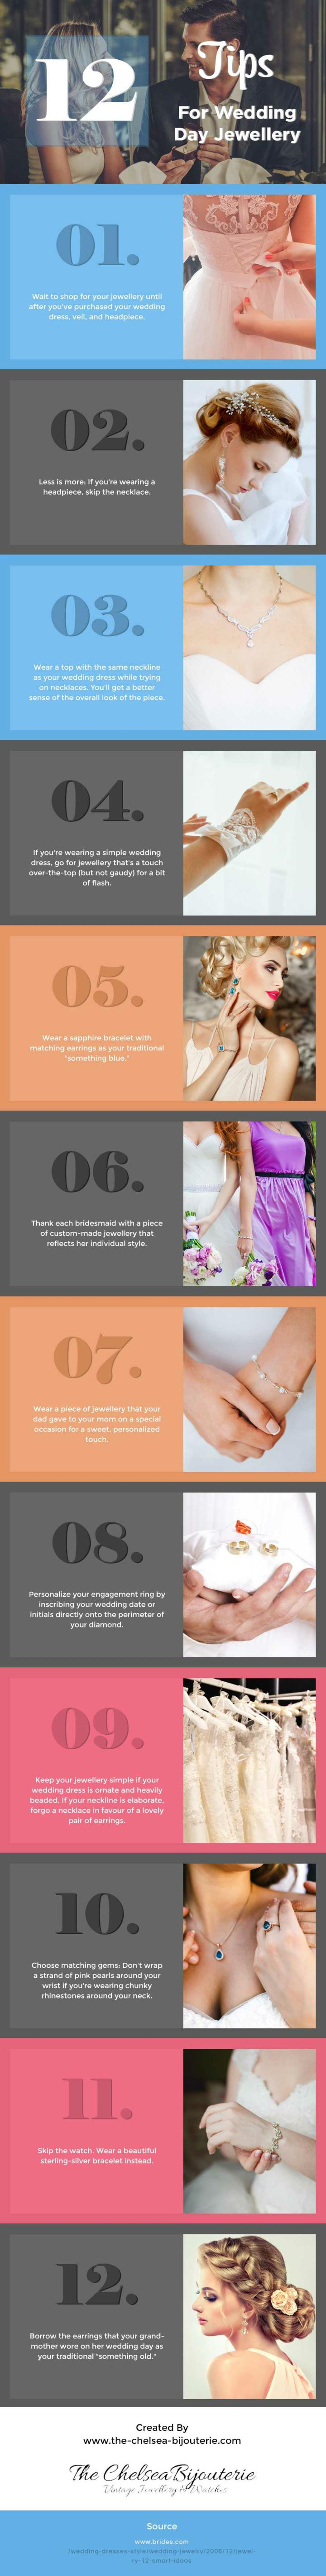 Health tips for wedding